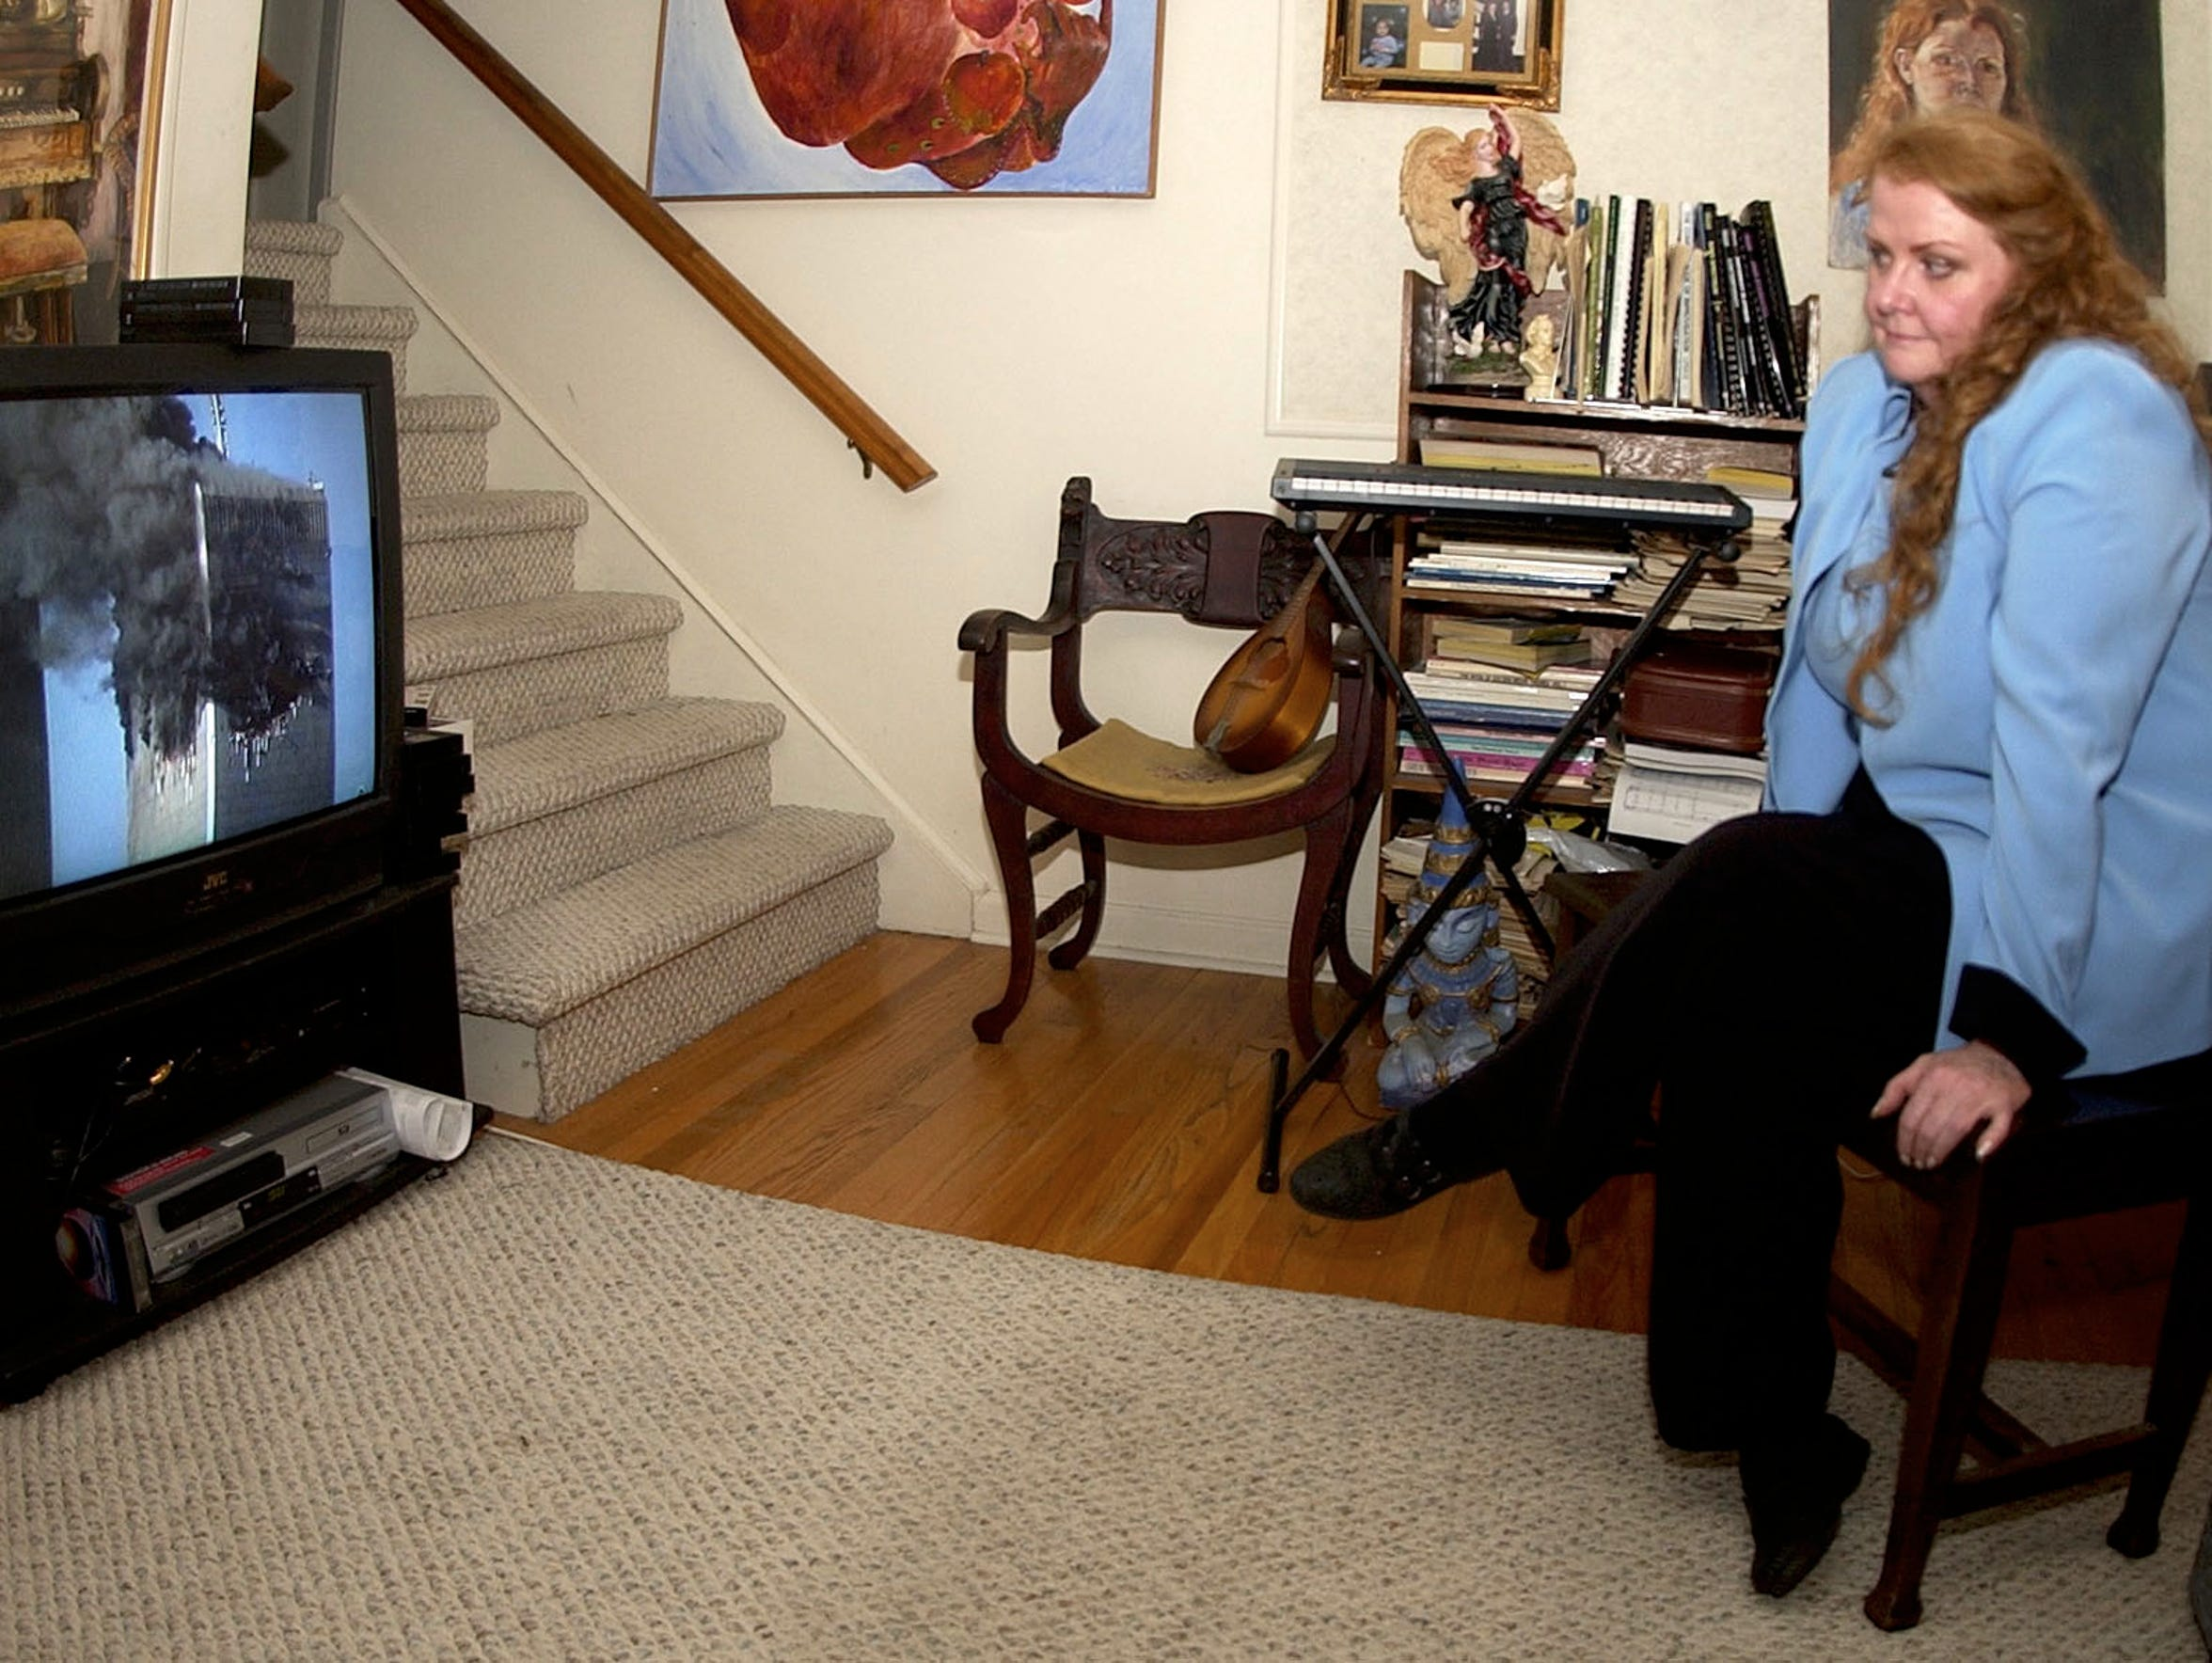 Margaret Gramly watches a DVD on 9/11 in her New Jersey